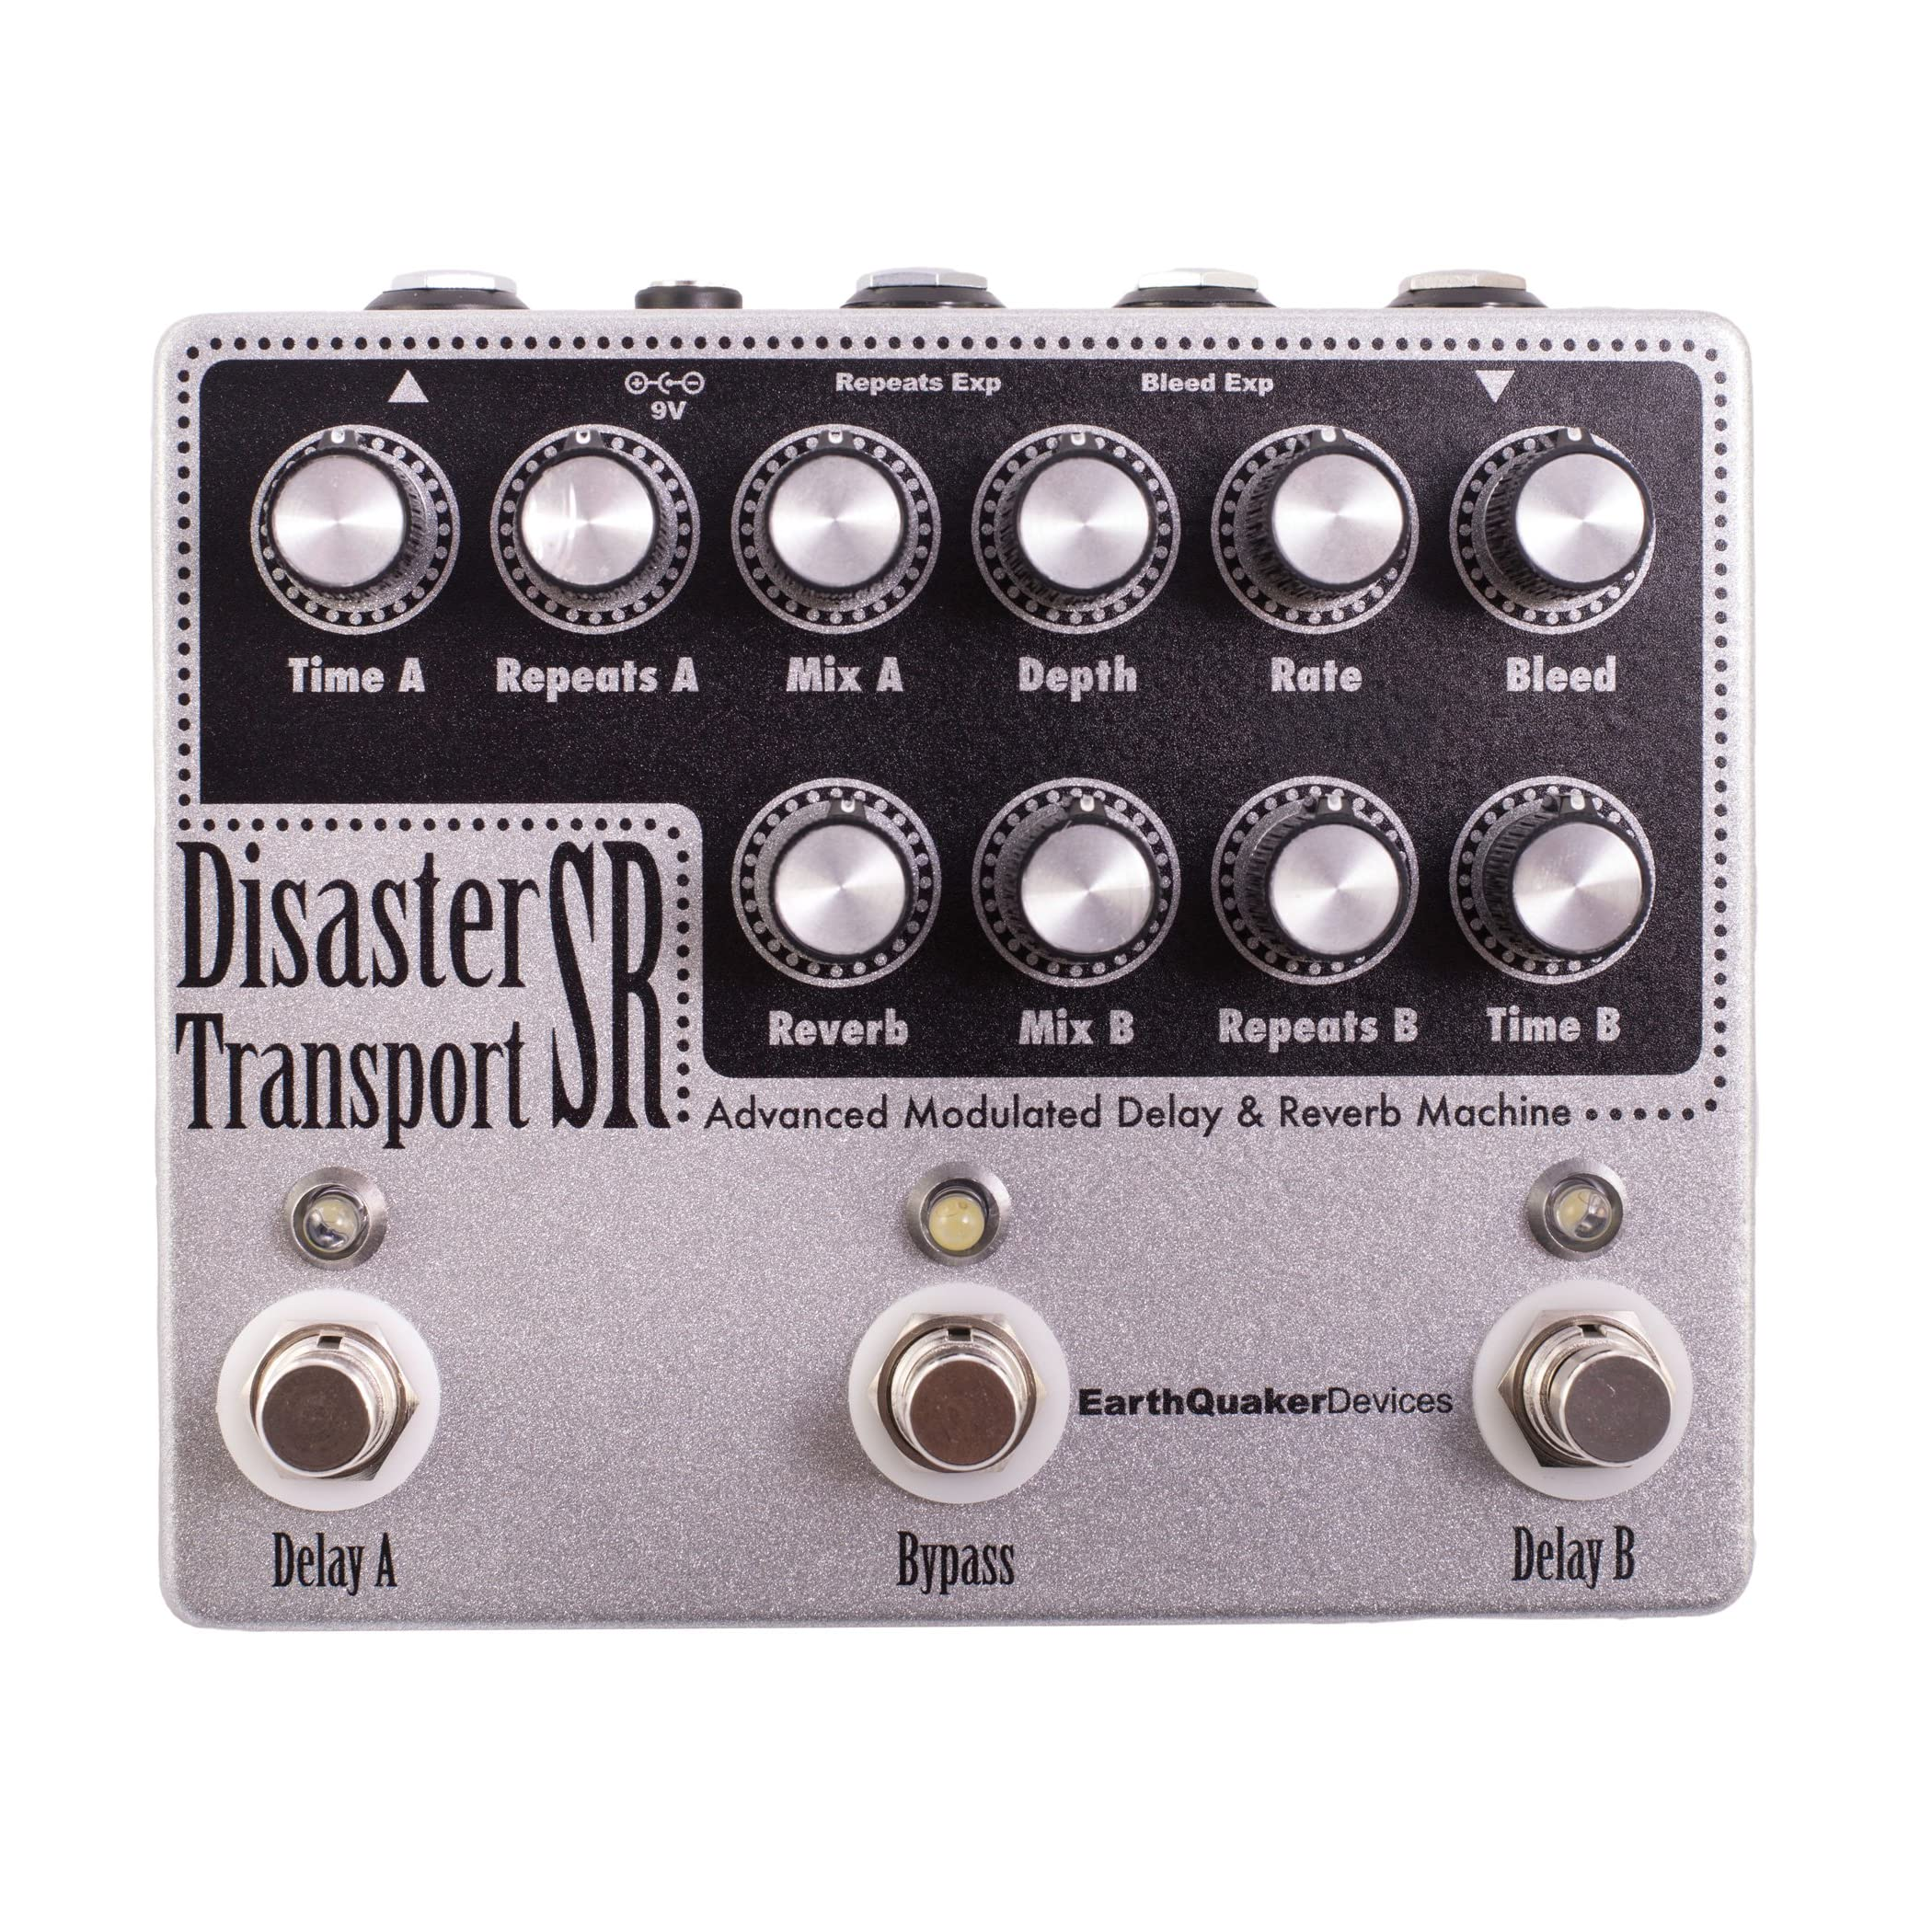 エフェクター画像 EarthQuaker Devices Disaster Transport SR